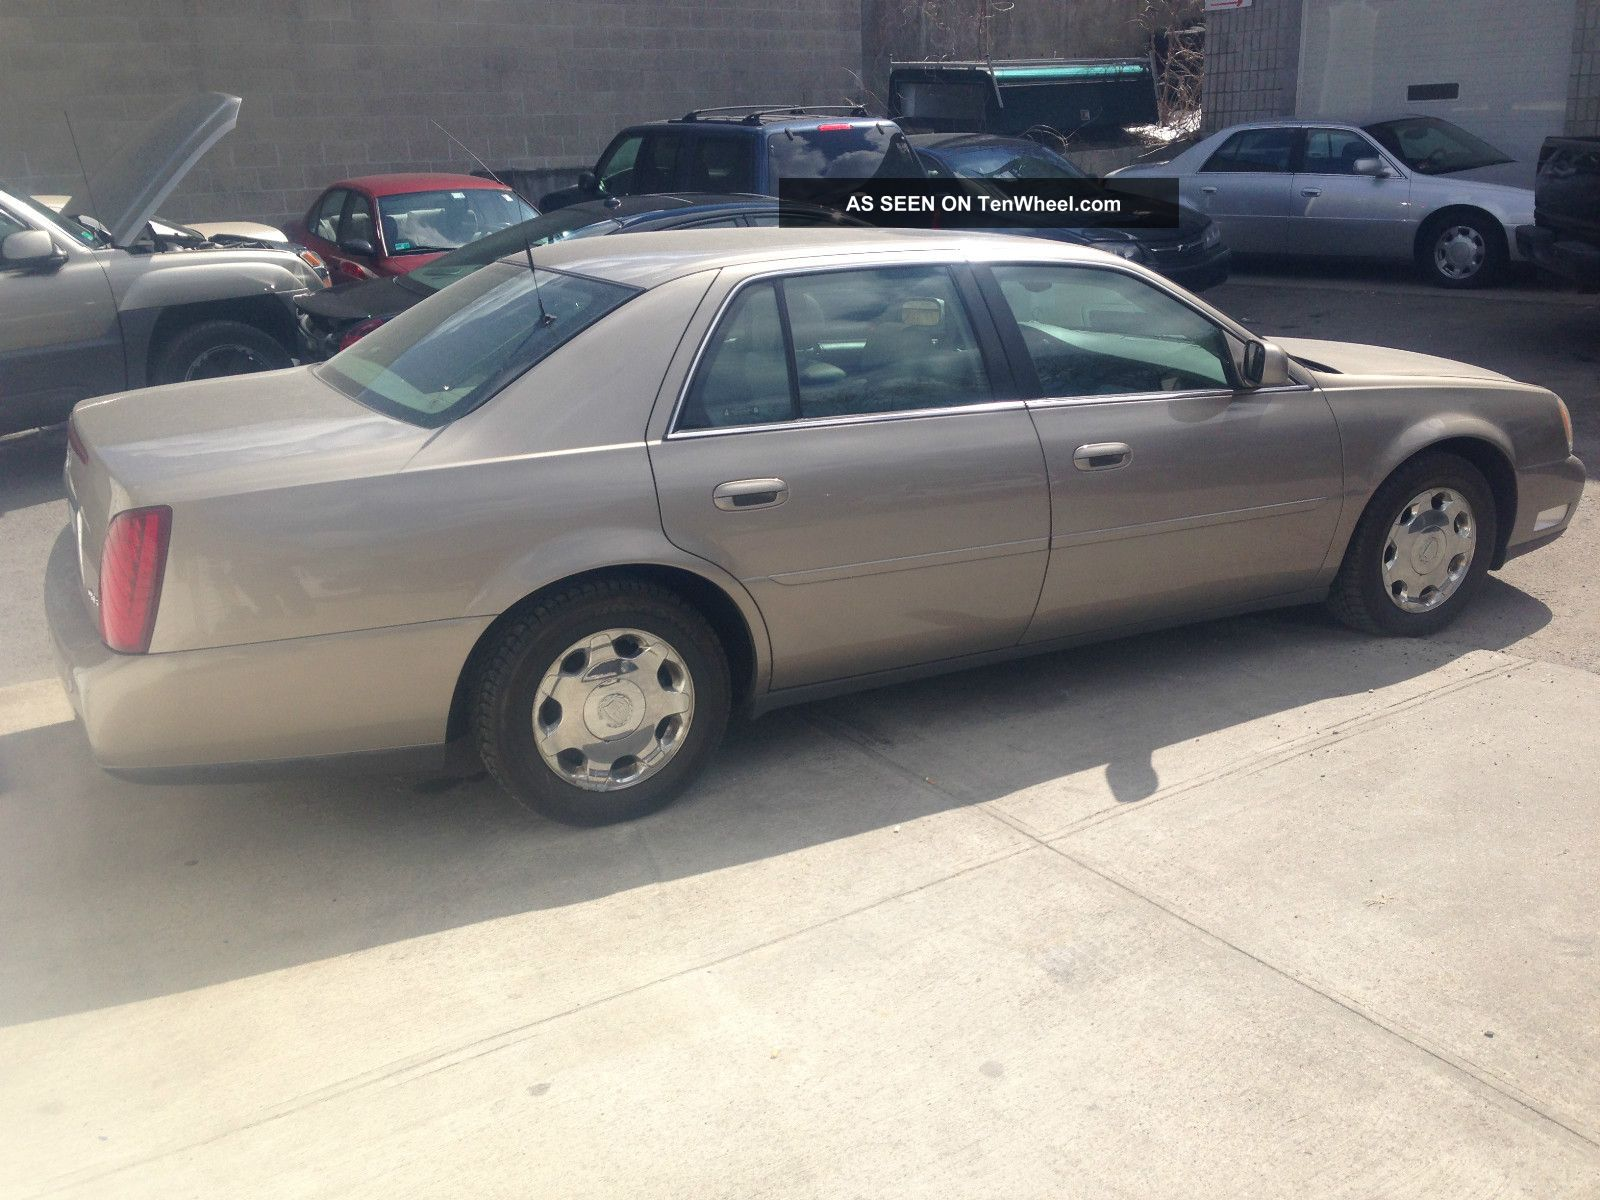 2002 cadillac deville dhs repo repo repo. Cars Review. Best American Auto & Cars Review